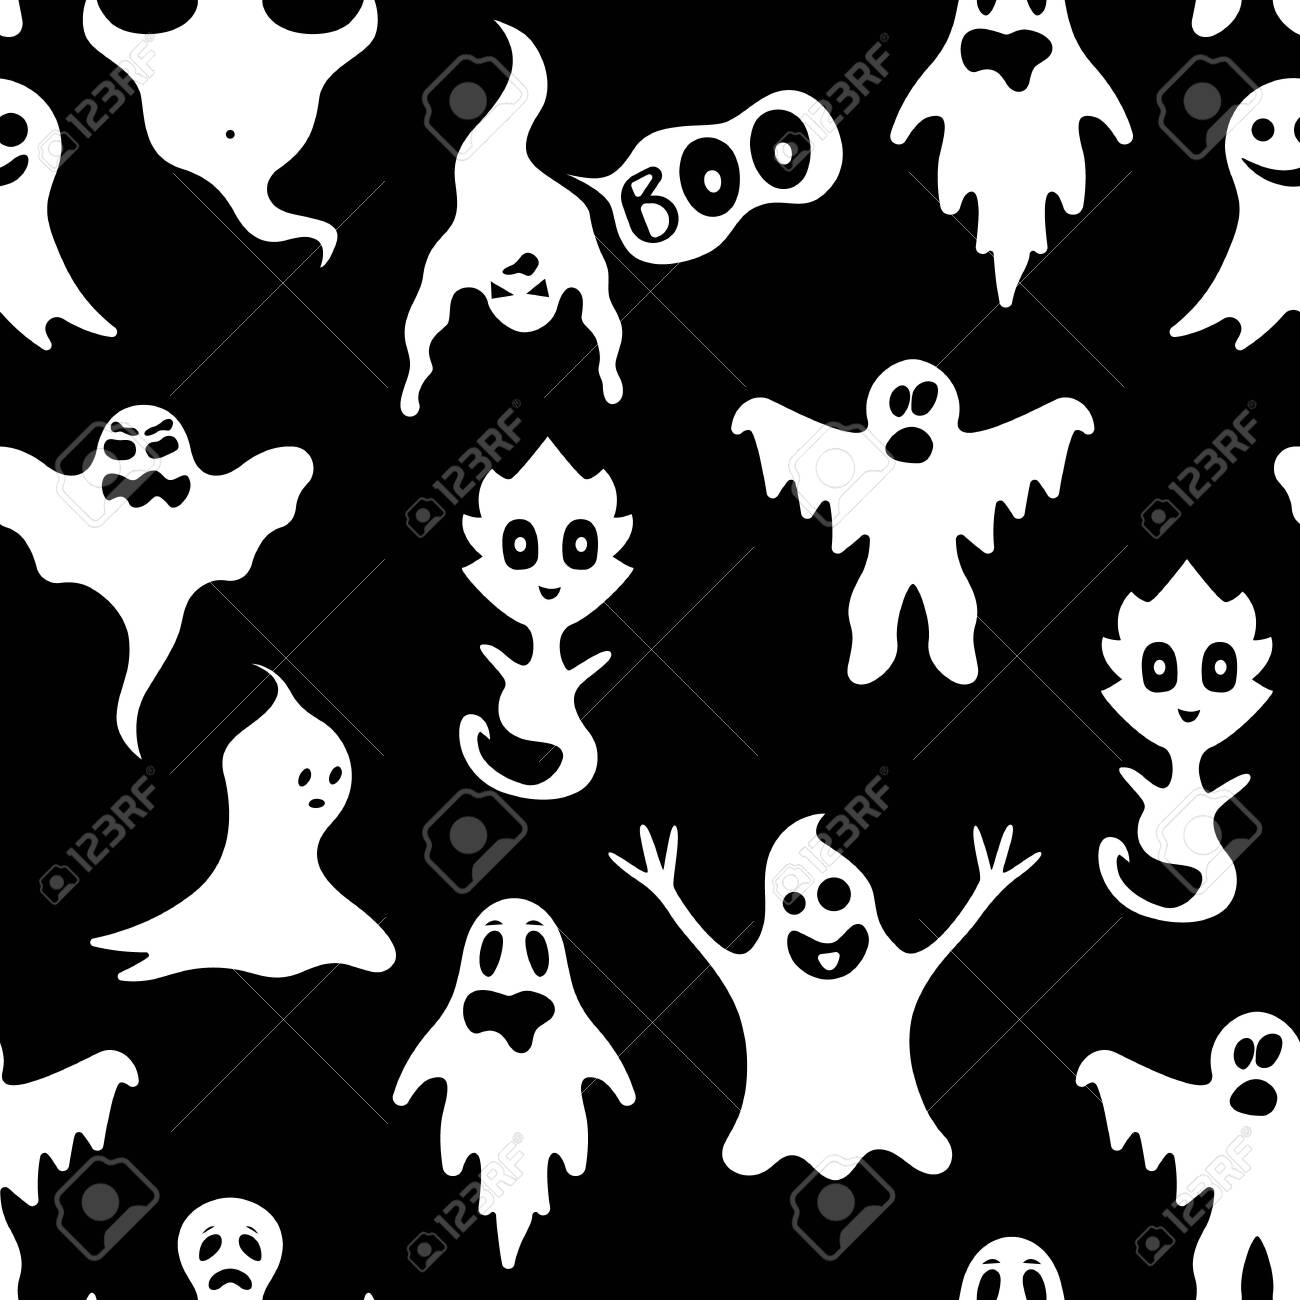 Cartoon White Ghosts Characters Seamless Pattern Background. Vector - 133427208